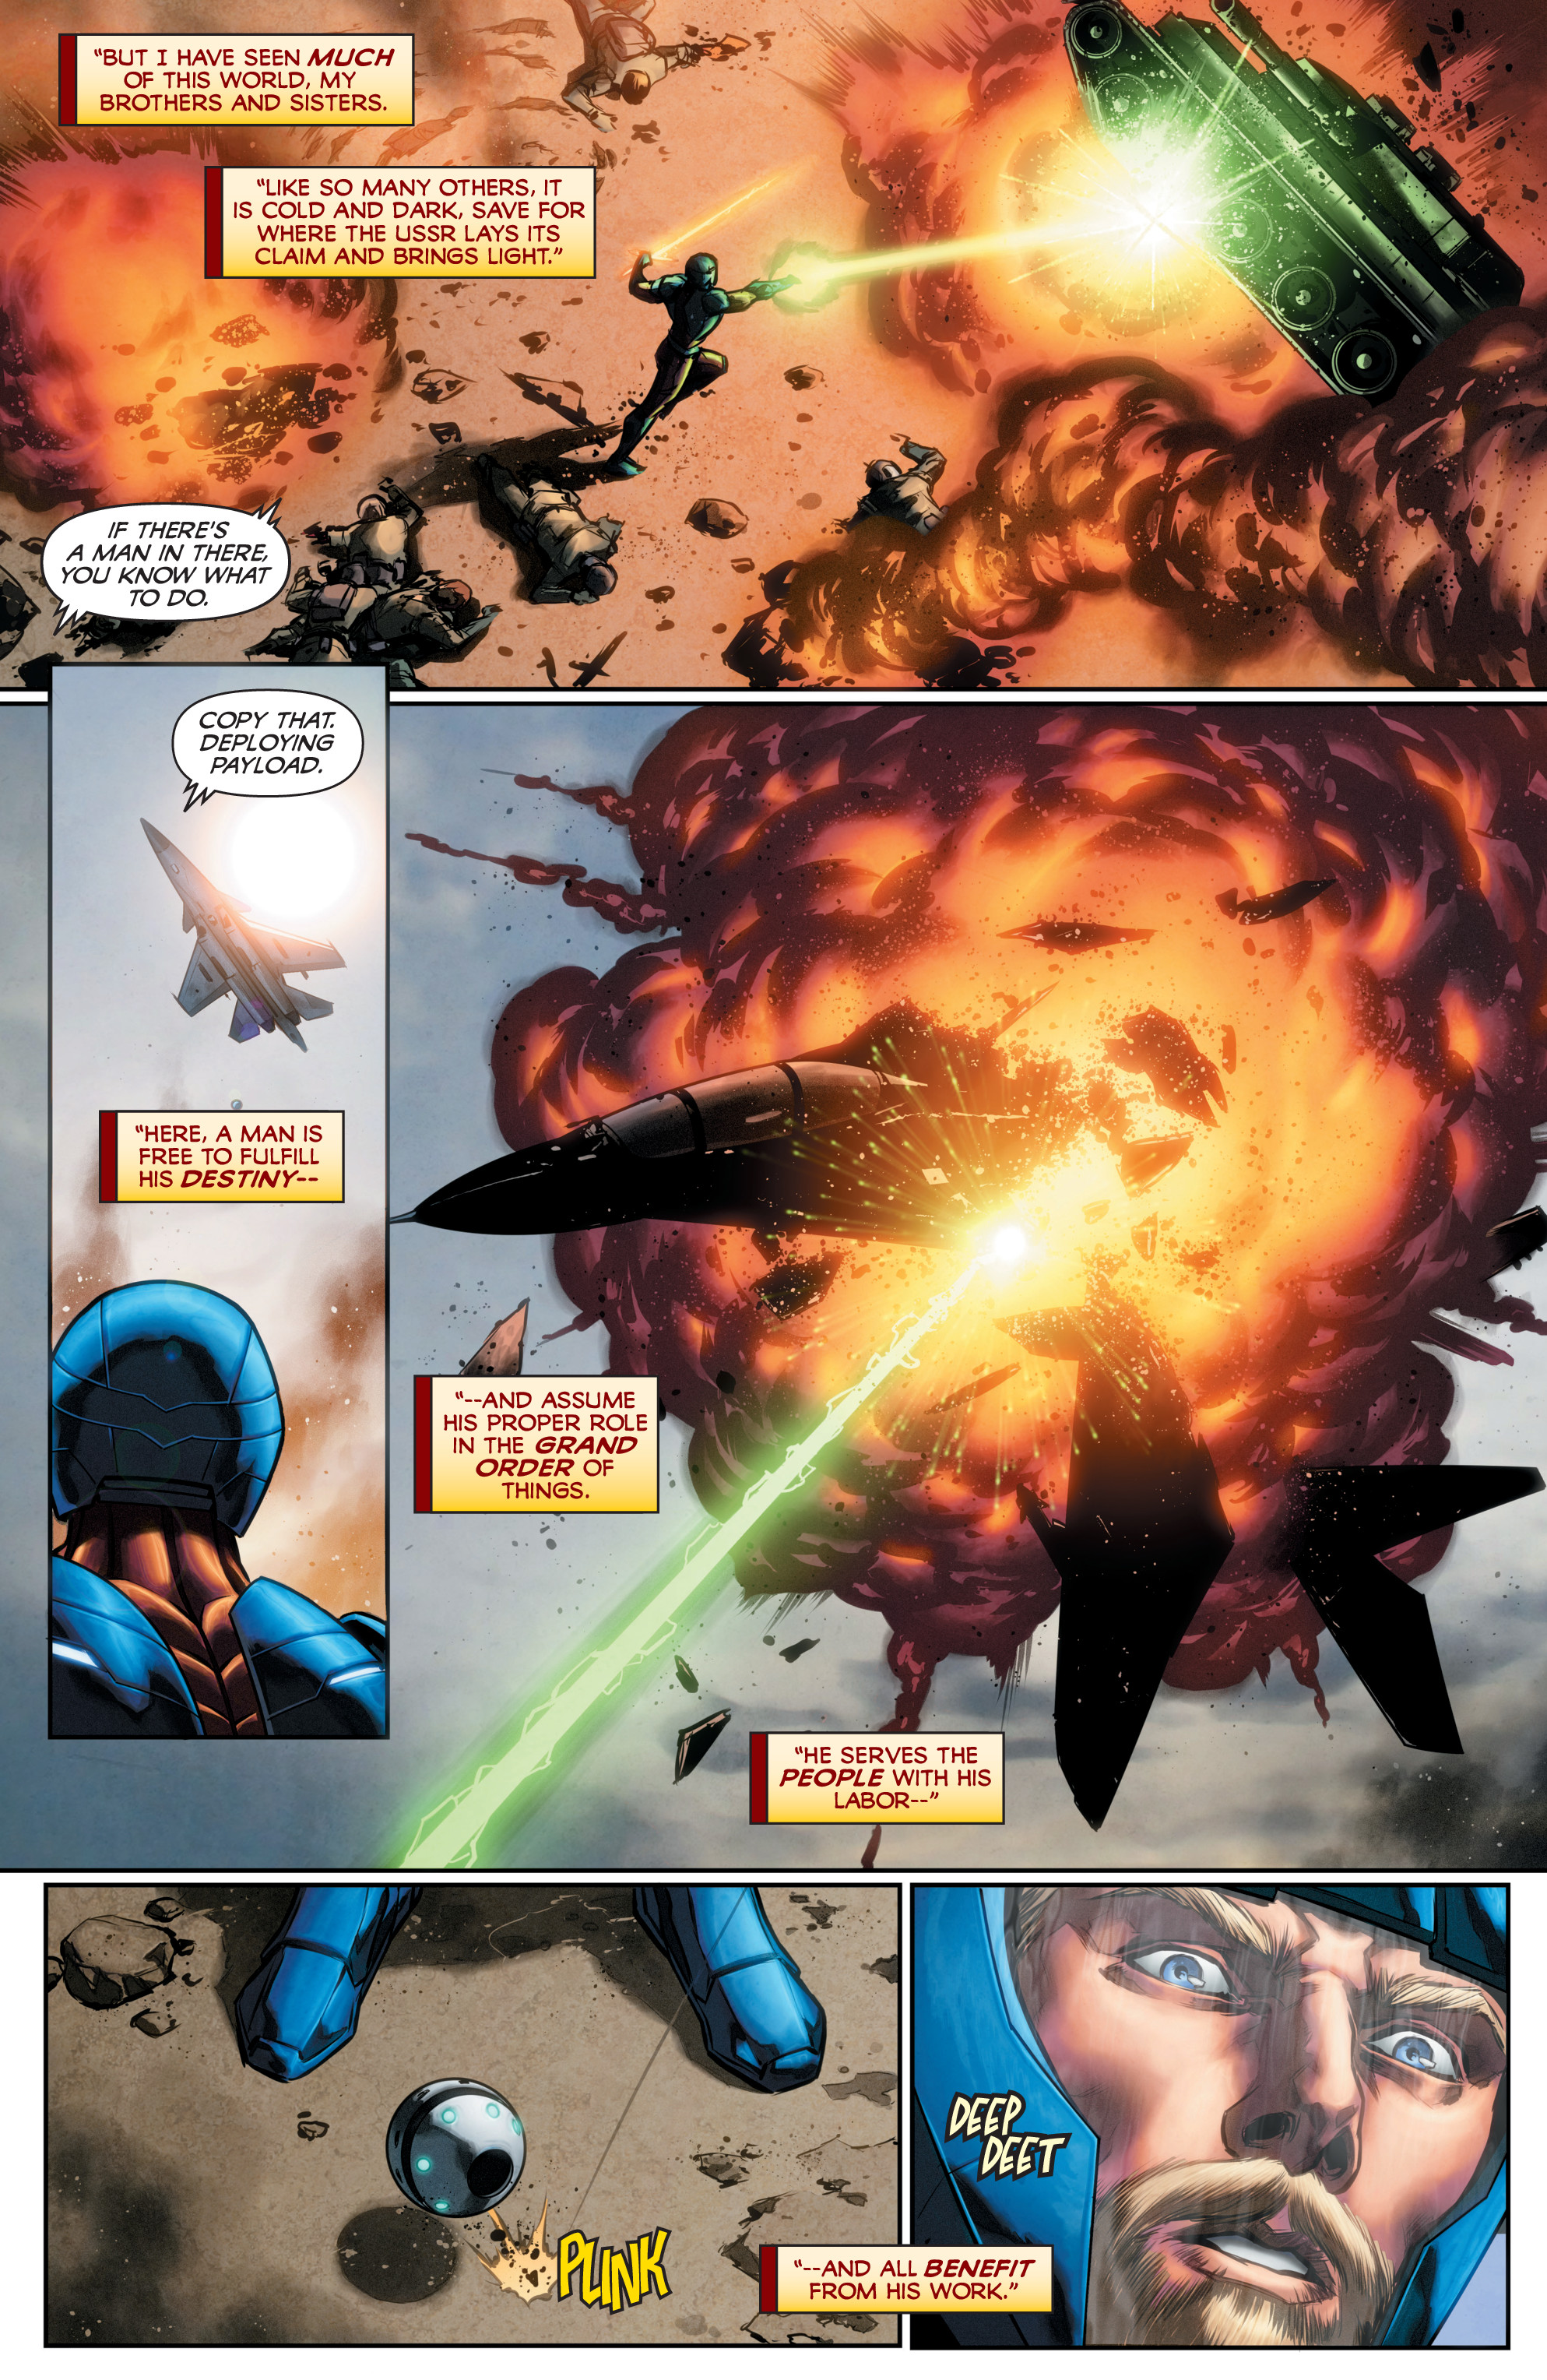 Divinity III: Heroes of the Glorious Stalinverse (2017): Chapter 1 - Page Divinity III: Heroes of the Glorious Stalinverse (2017)